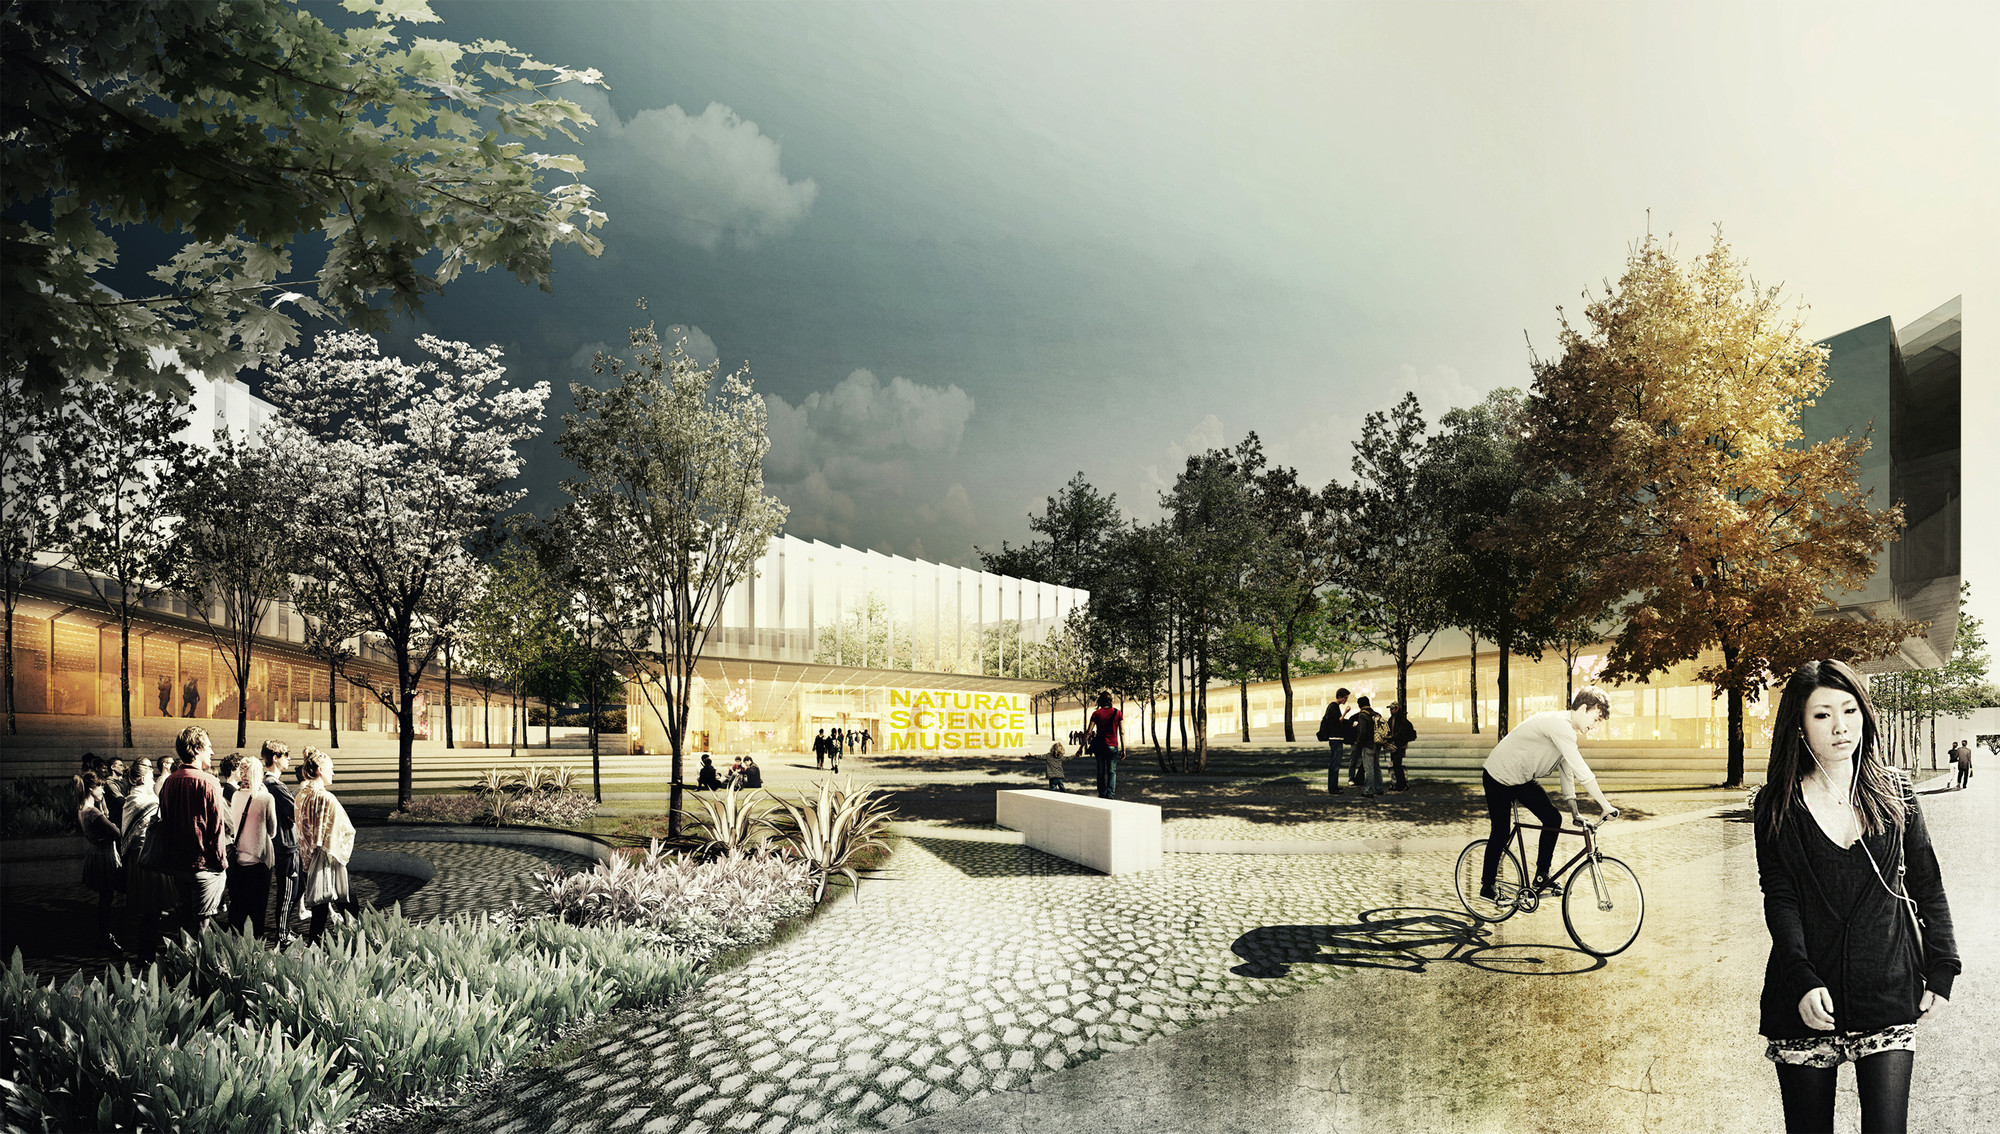 Winners of the Berlin Natural Science Museum Competition Revealed, First Place. Image Courtesy of AWR Competitions